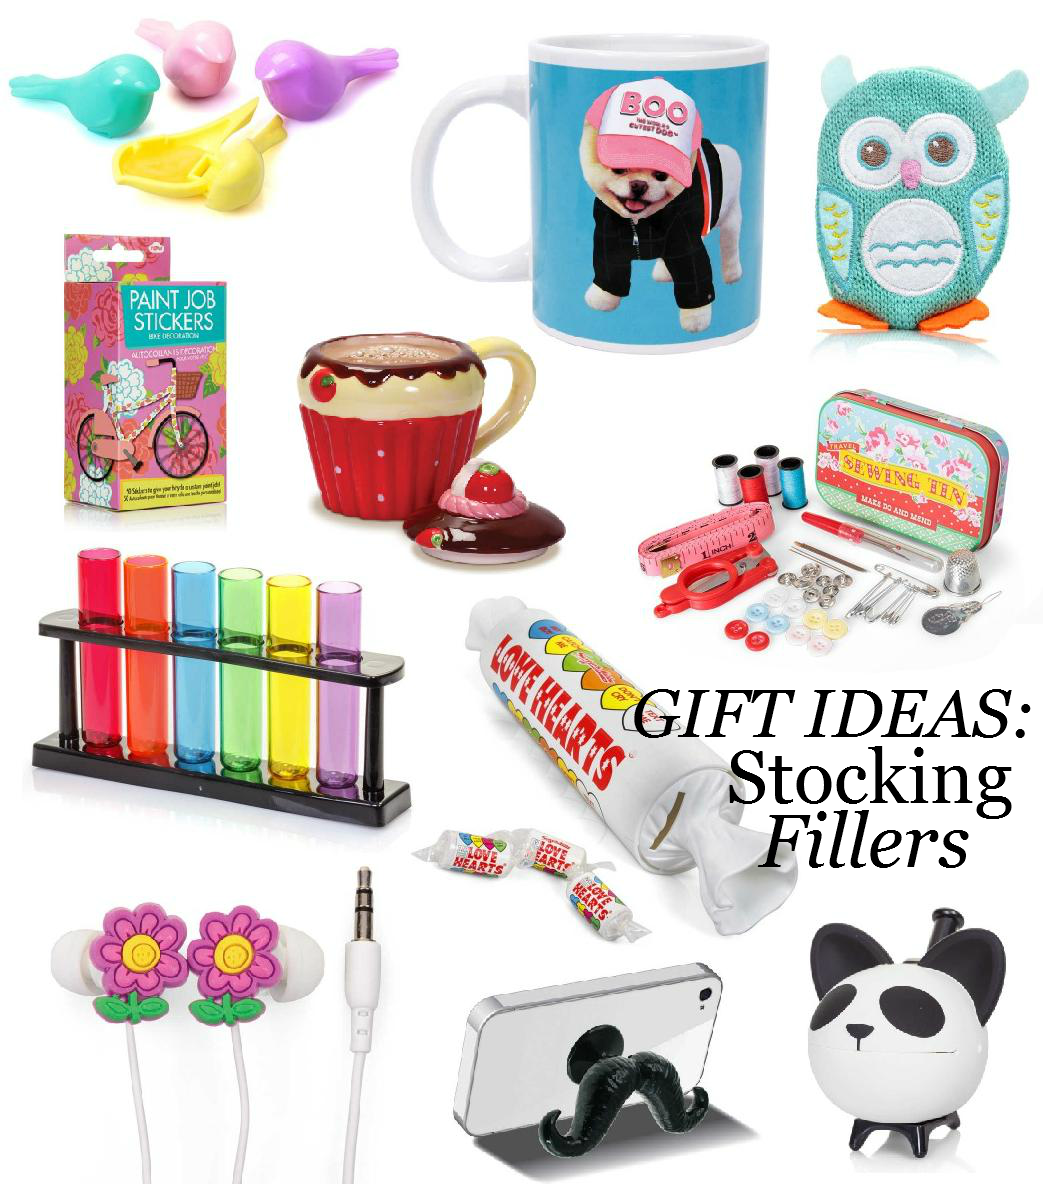 GIFT IDEAS: Stocking Fillers - The Lovecats Inc